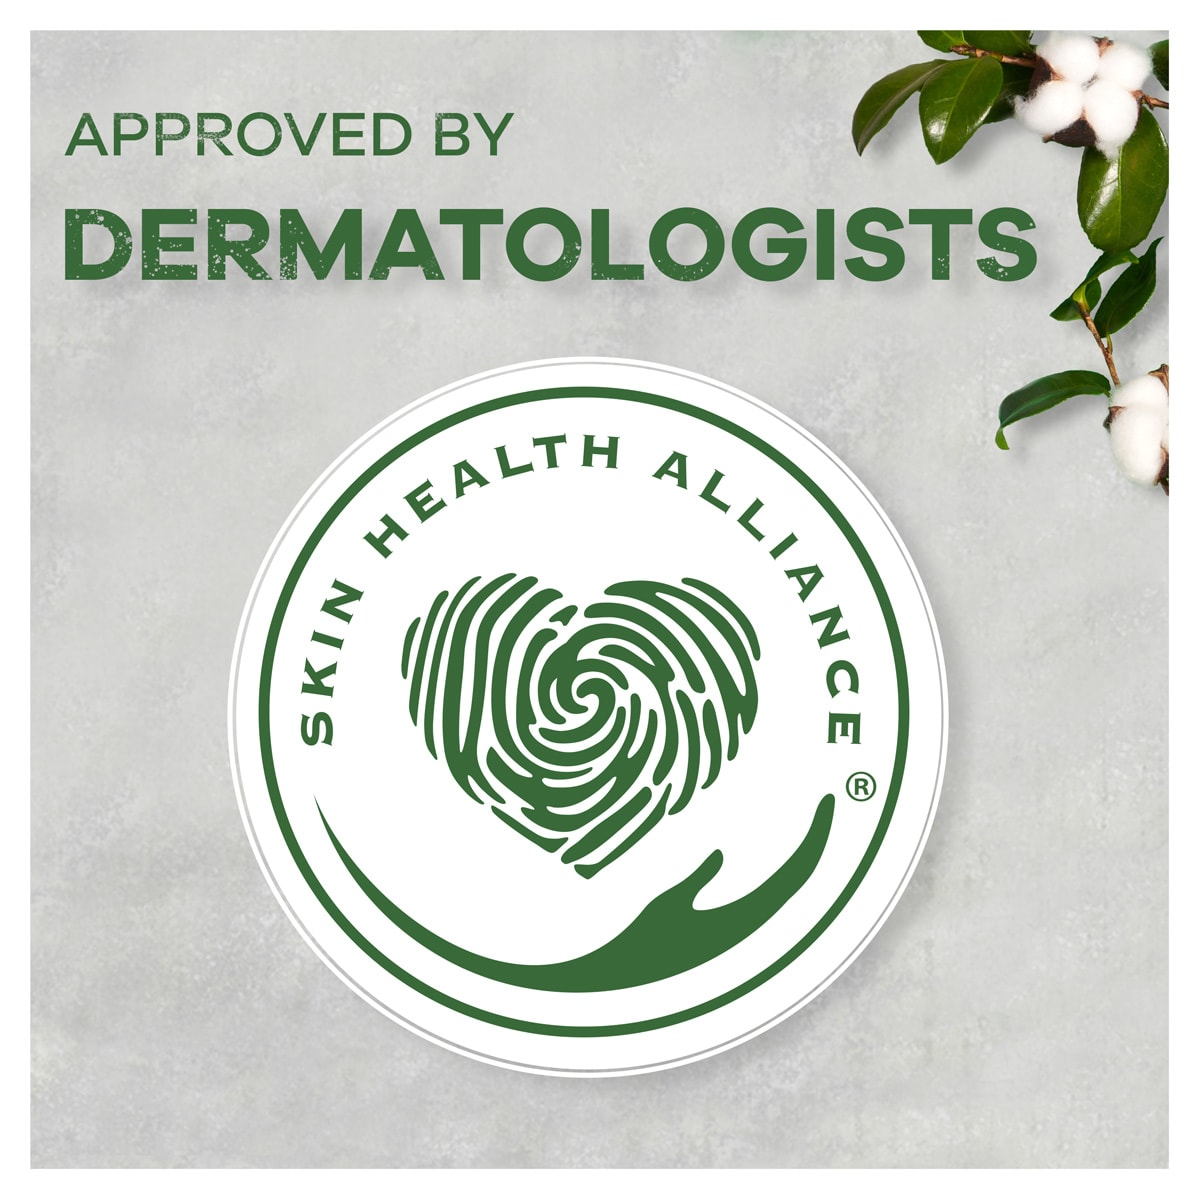 Approved by dermatologist